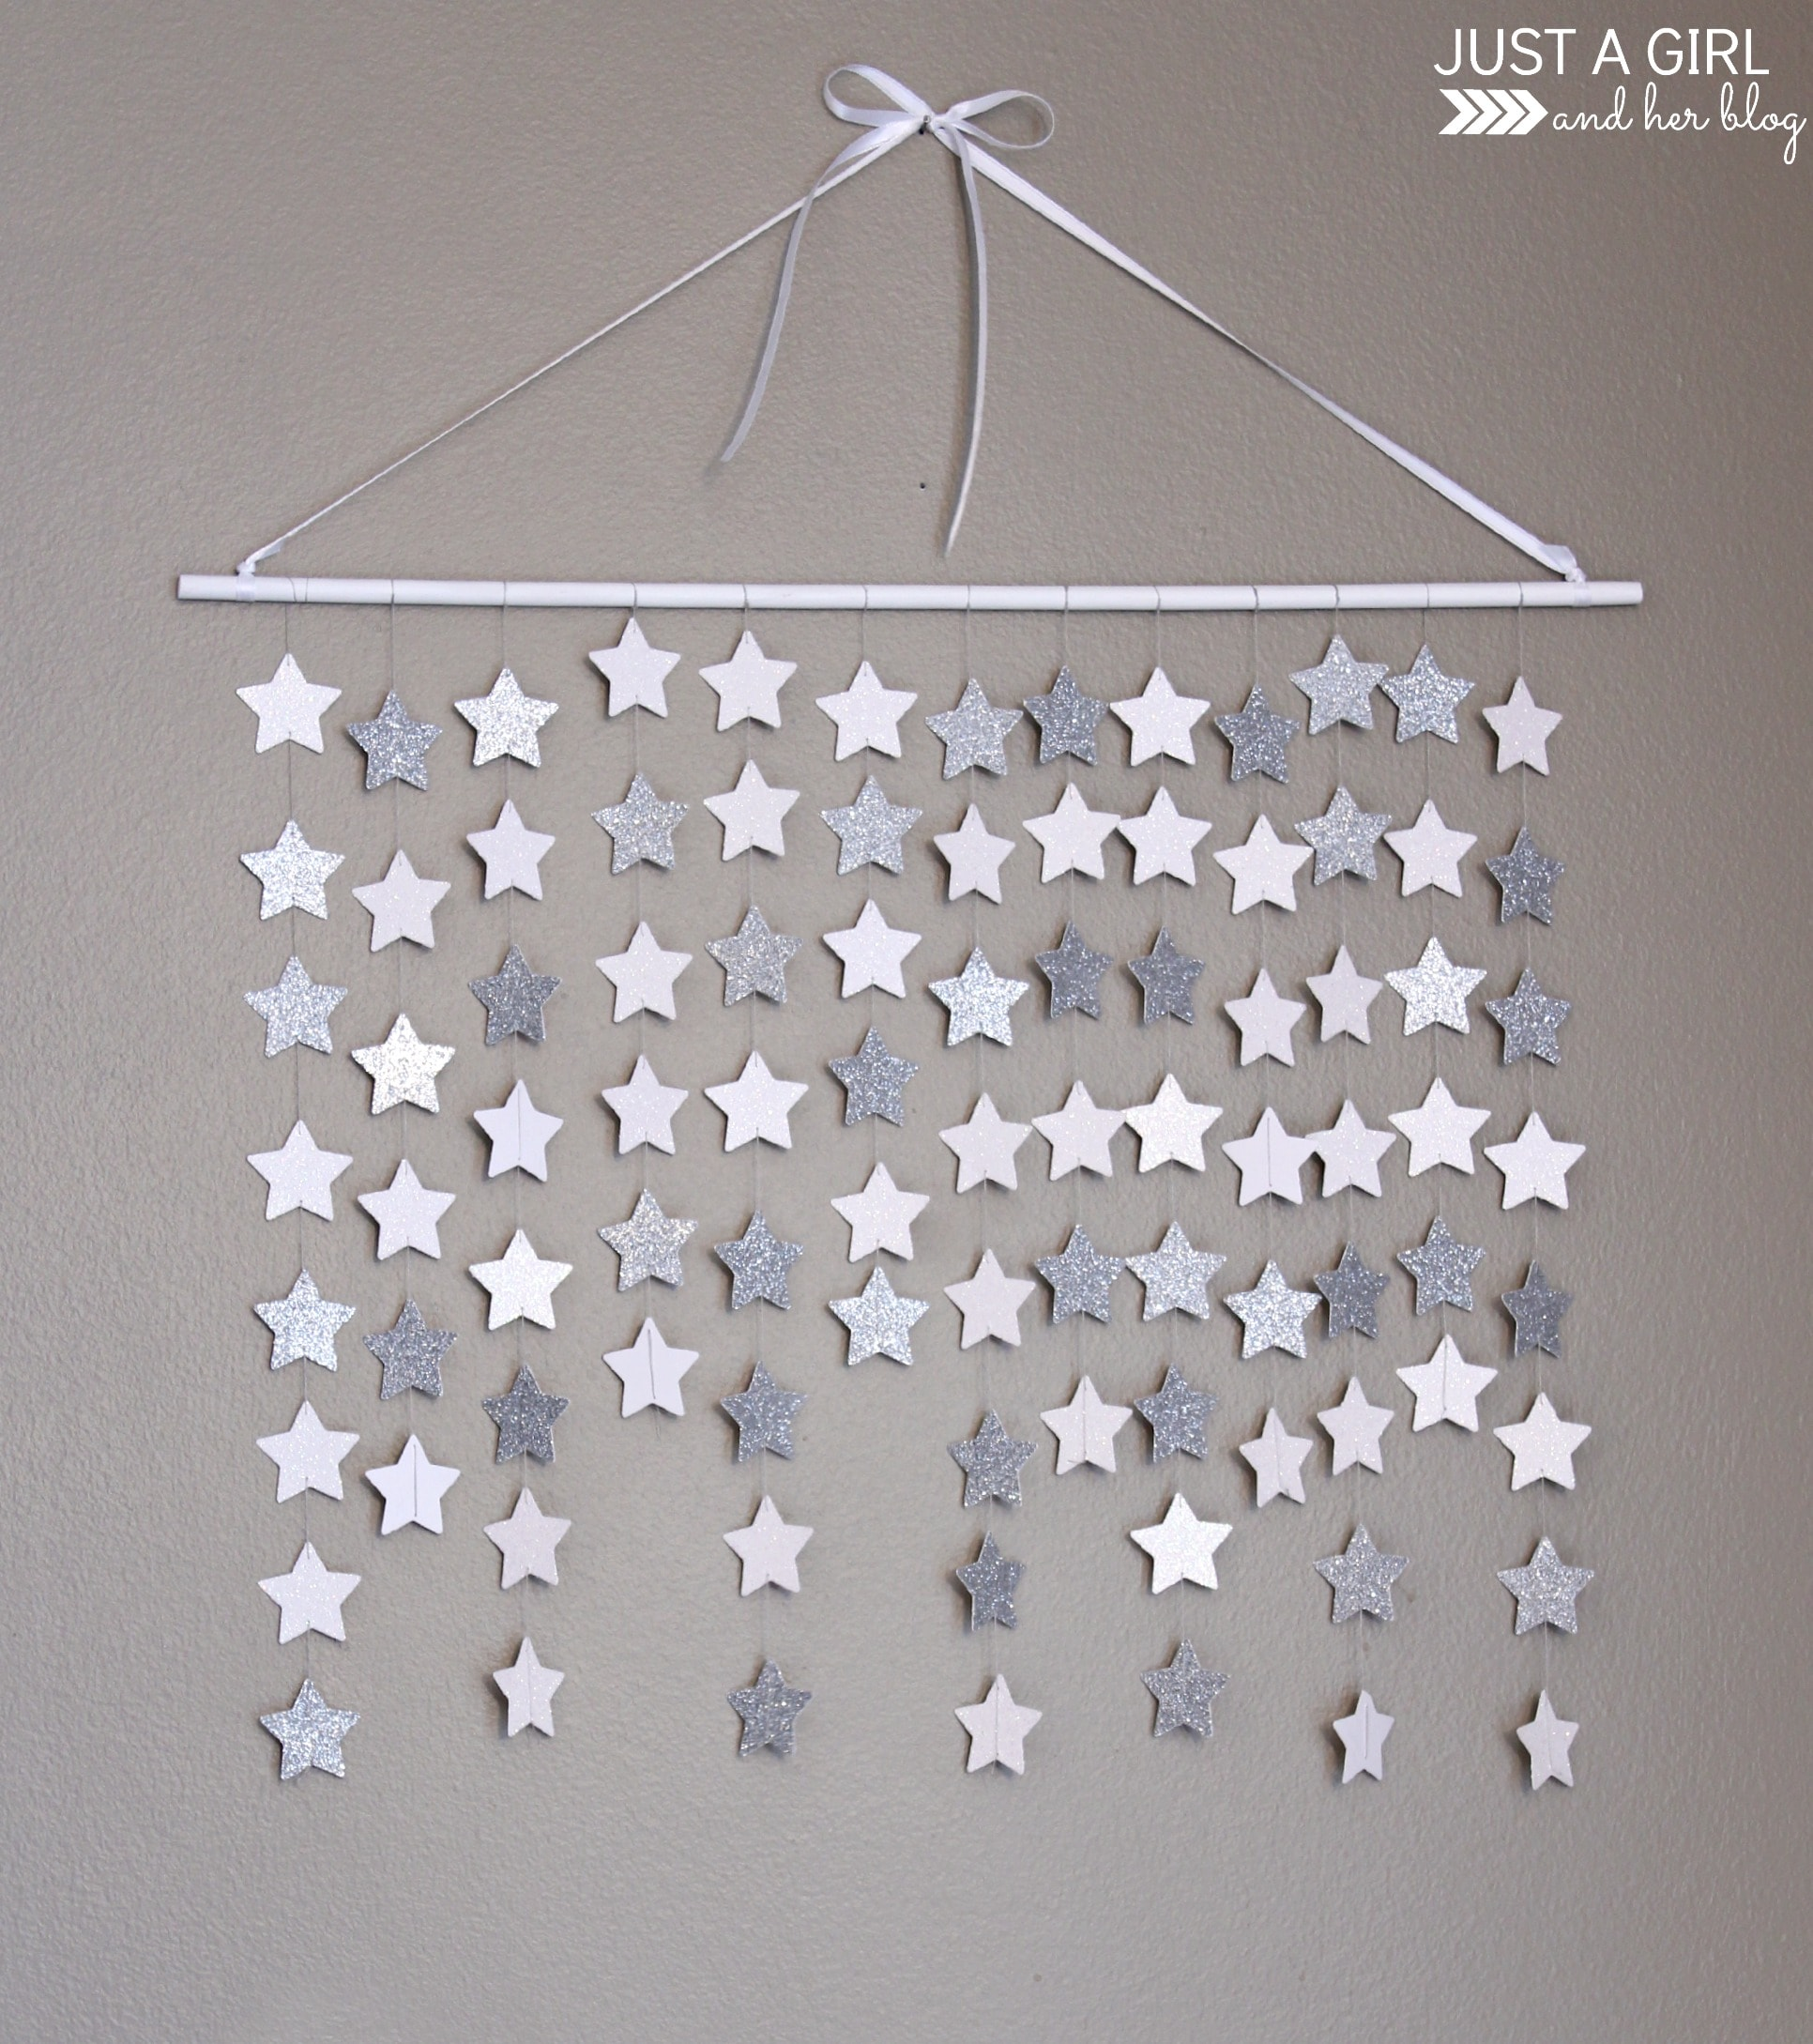 Falling star wall hanging just a girl and her blog for Wall hanging images